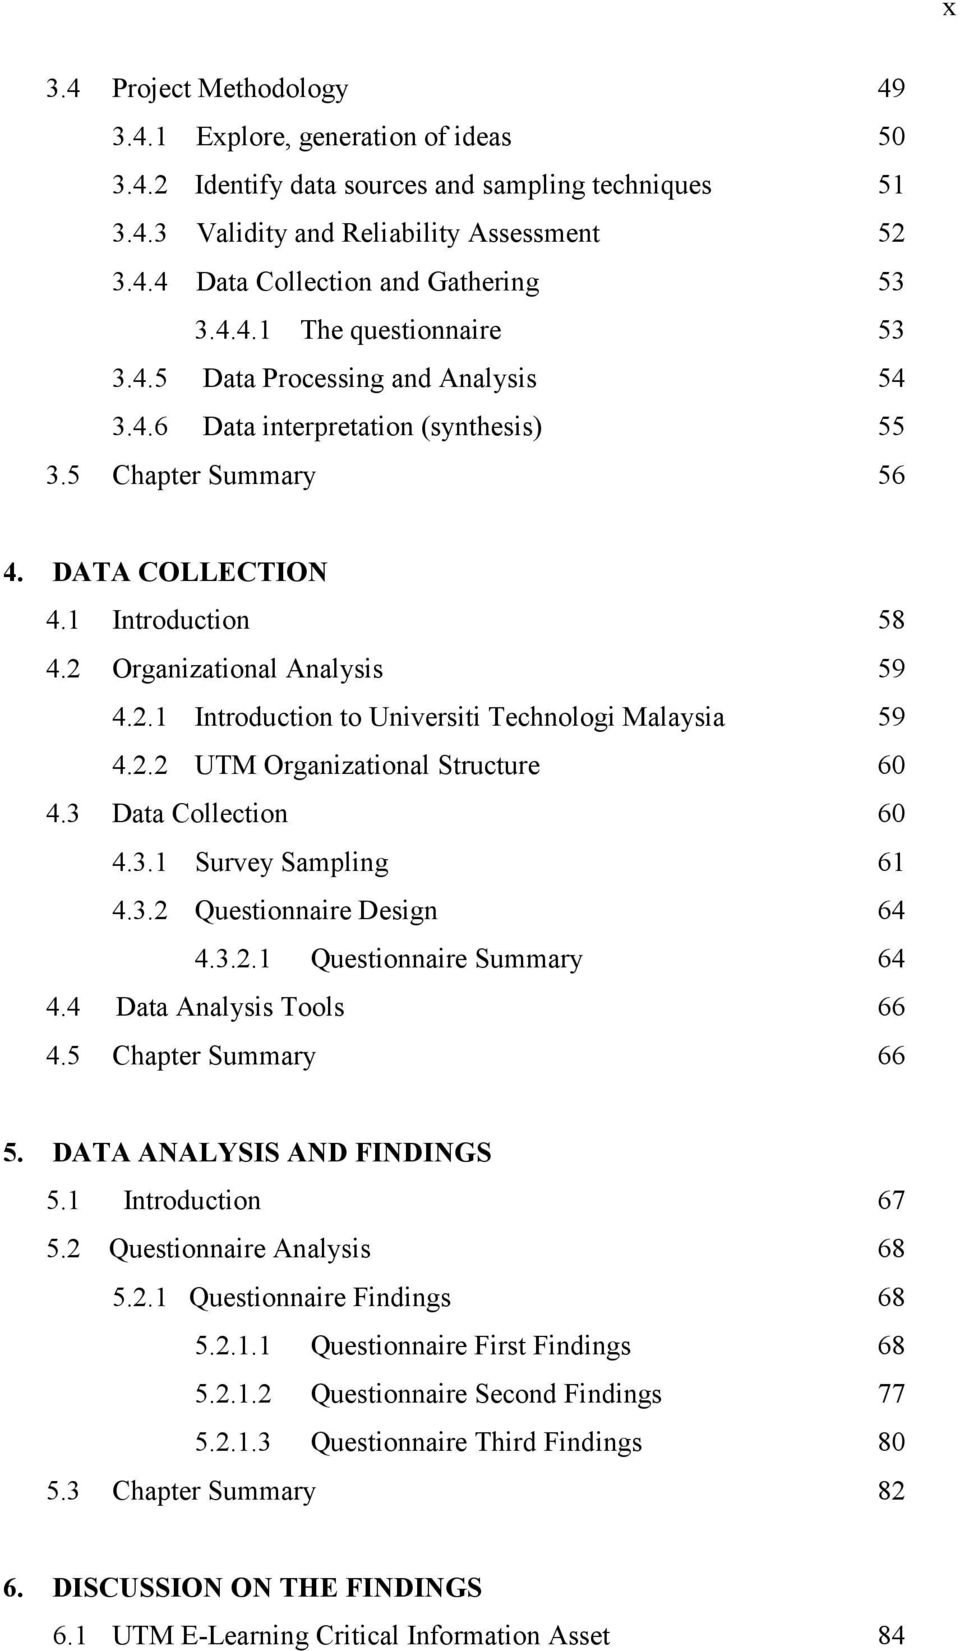 2 Organizational Analysis 59 4.2.1 Introduction to Universiti Technologi Malaysia 59 4.2.2 UTM Organizational Structure 60 4.3 Data Collection 60 4.3.1 Survey Sampling 61 4.3.2 Questionnaire Design 64 4.